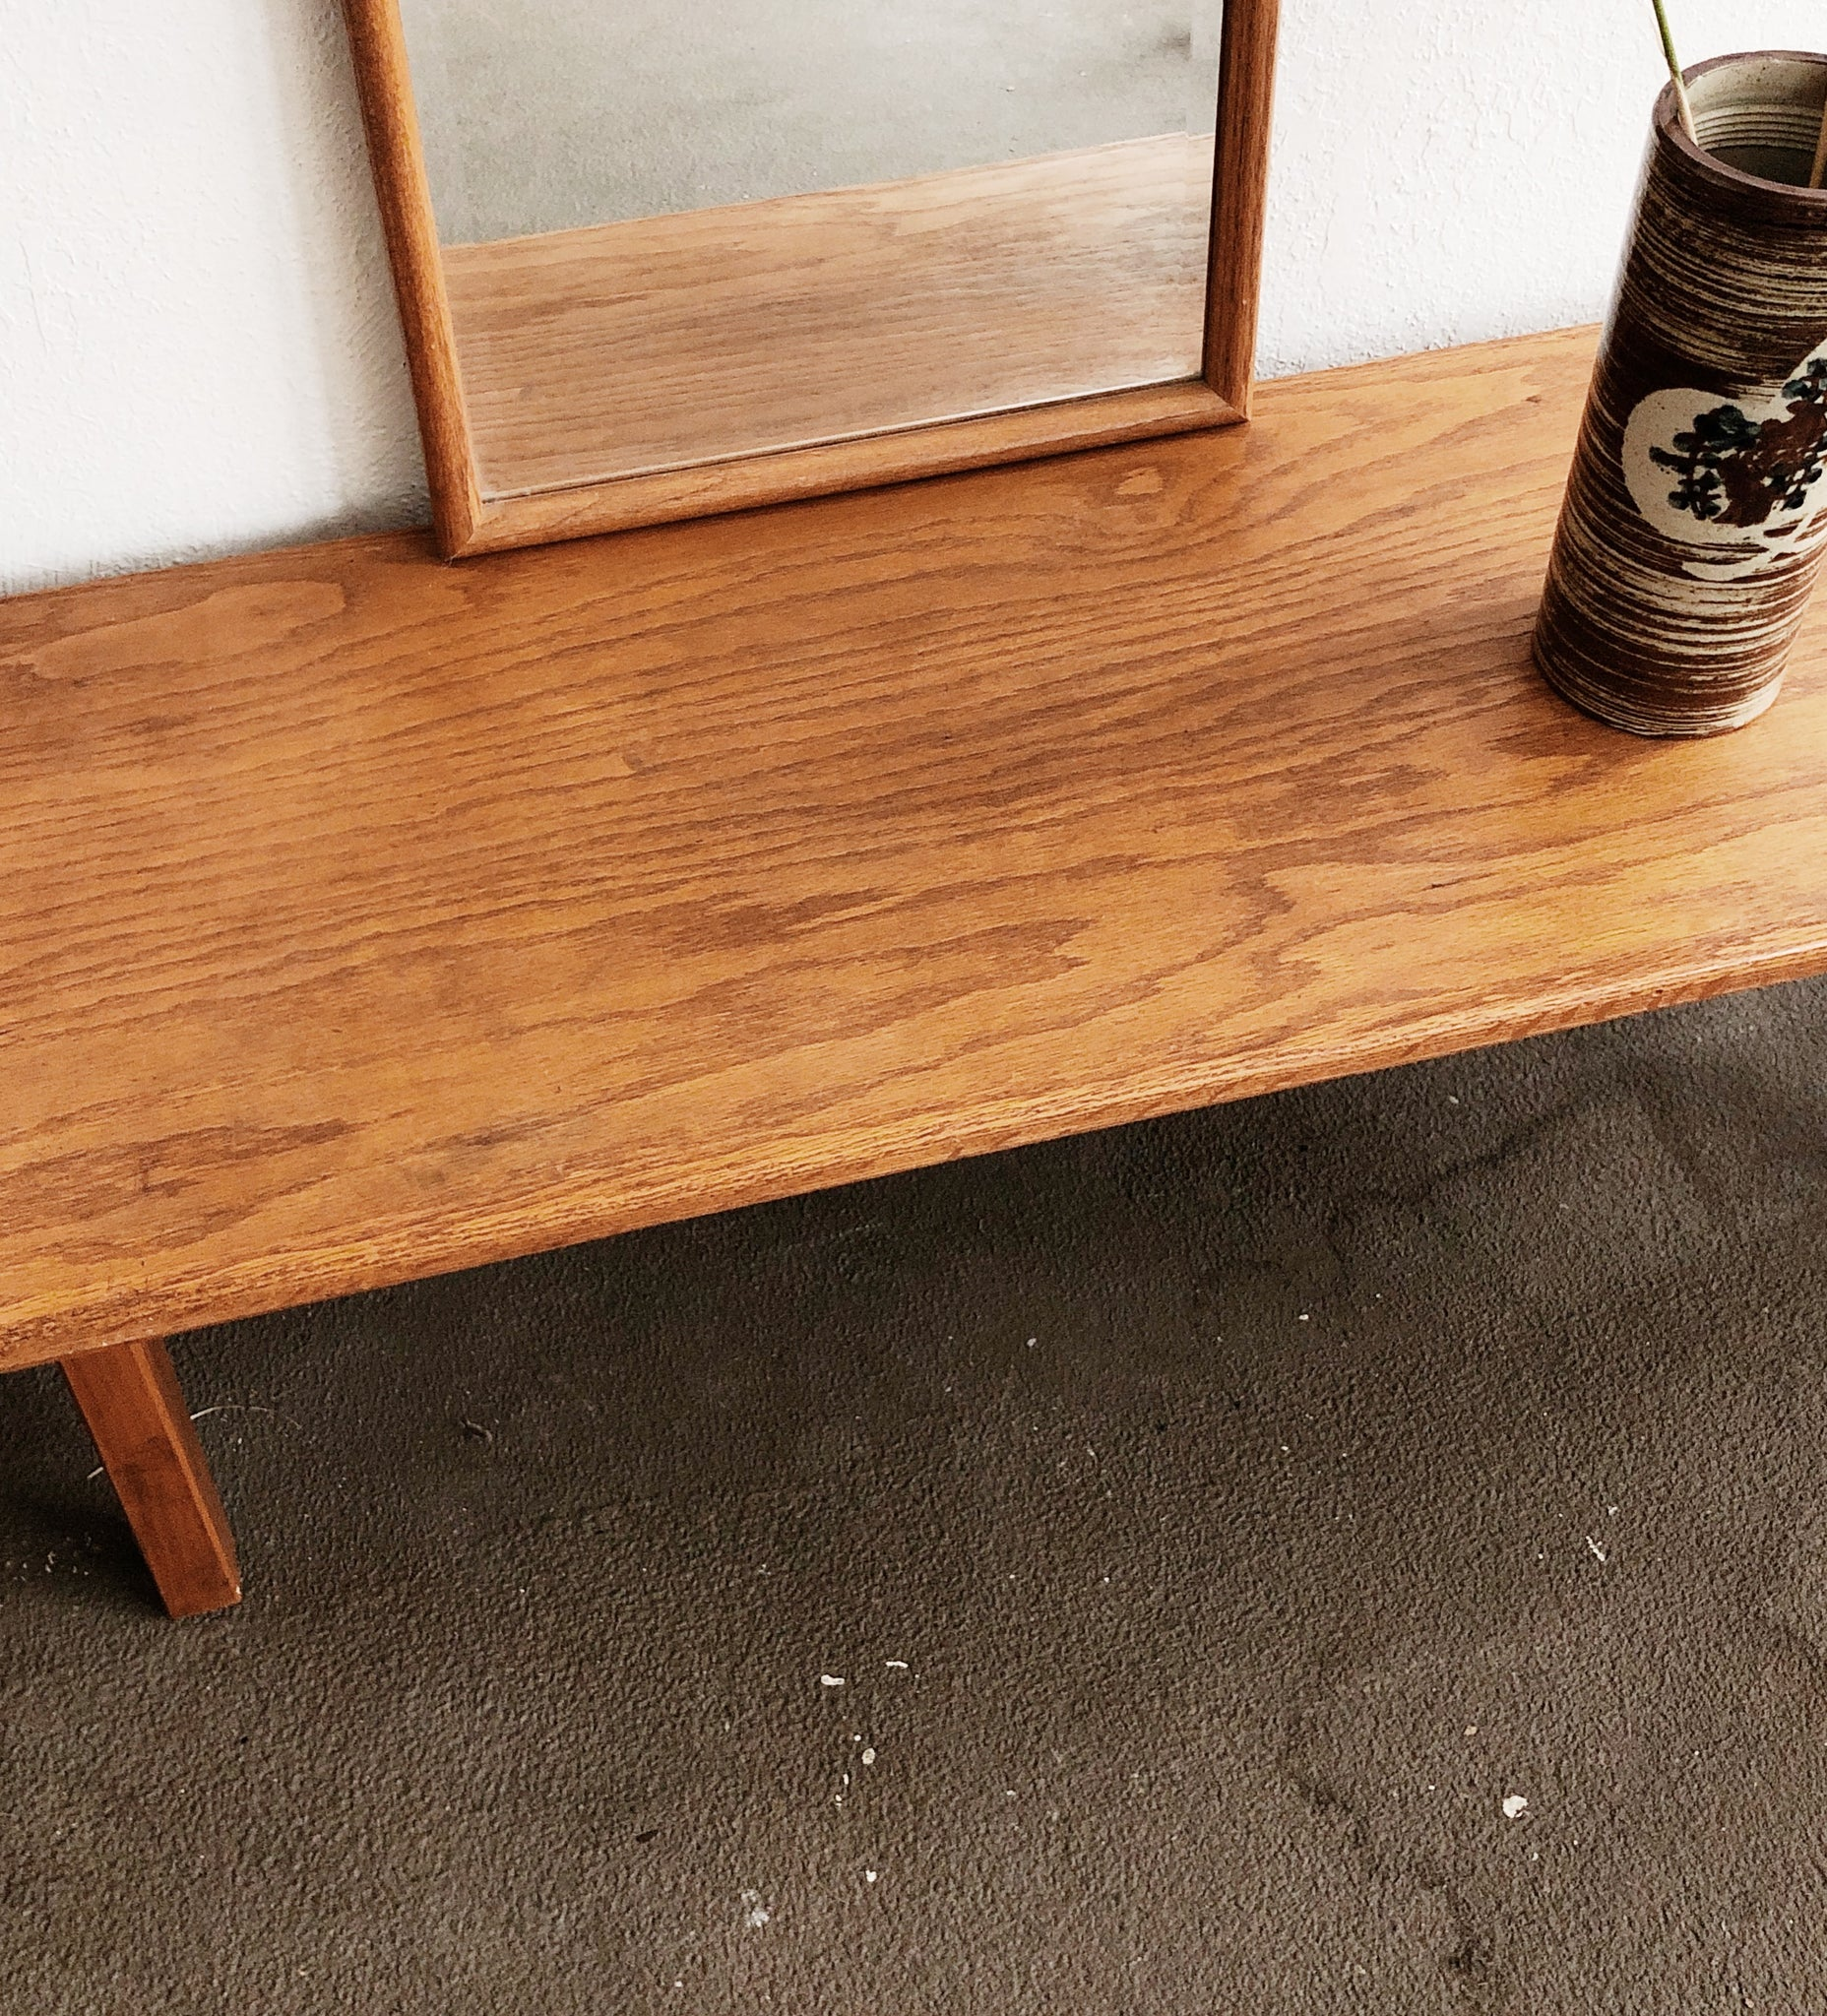 Vintage Oak Bench or Coffee Table